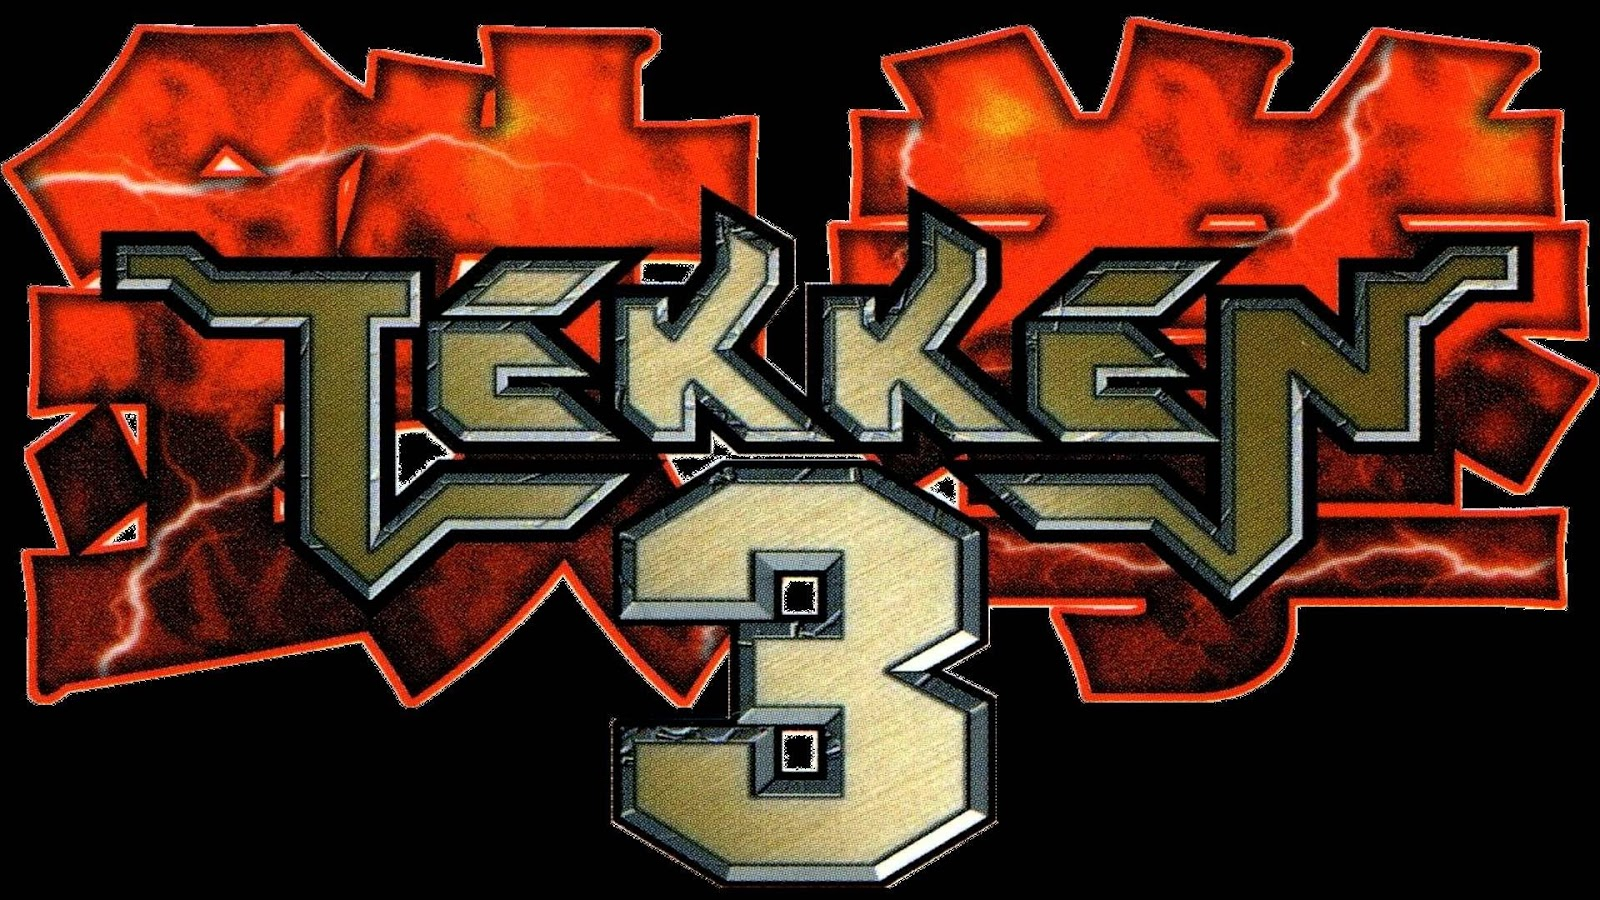 Tekken 3 game free download for pc full version | downloads-maniaaa.